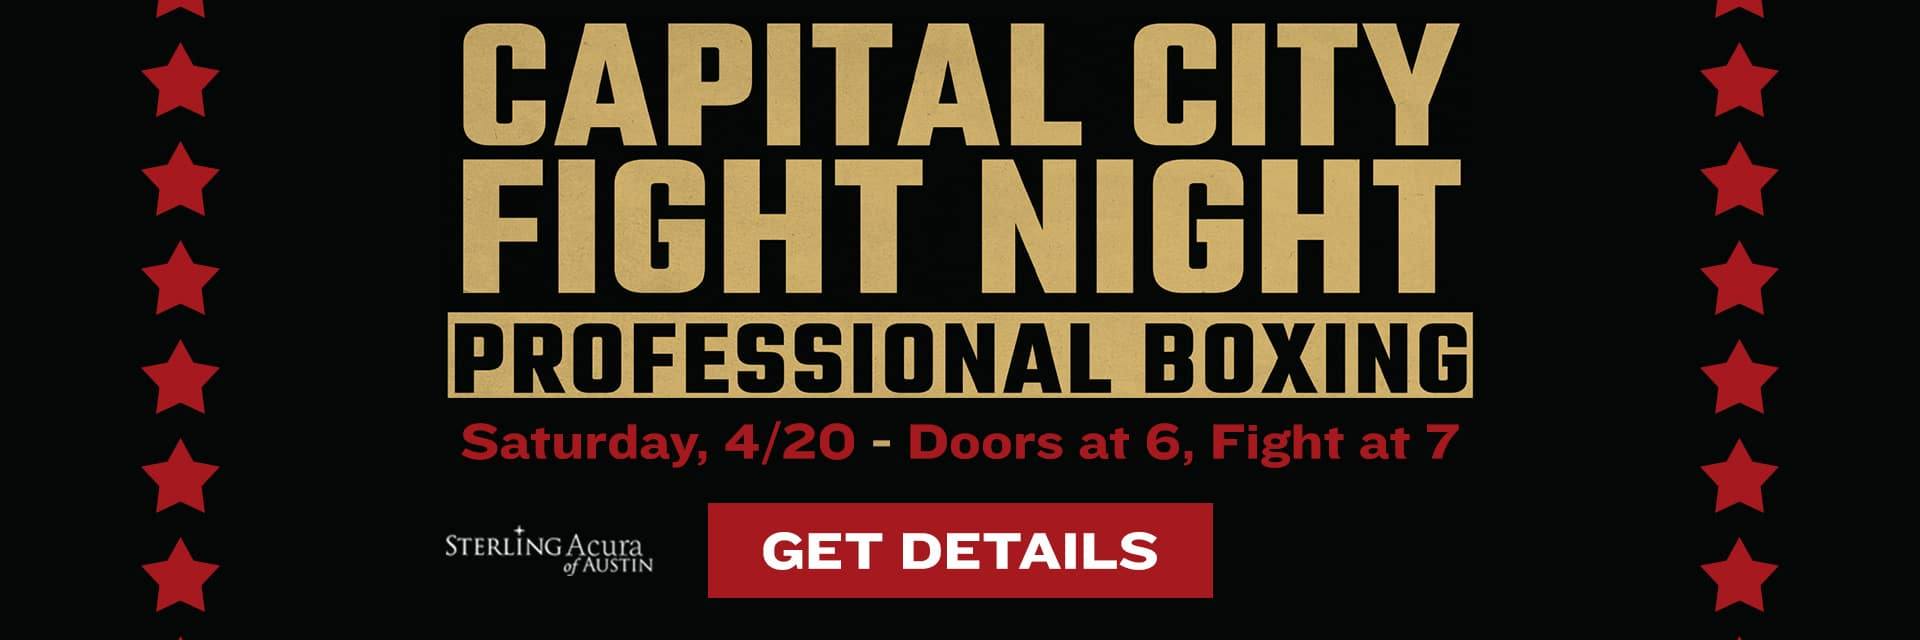 Capital City Fight Night - Get Details